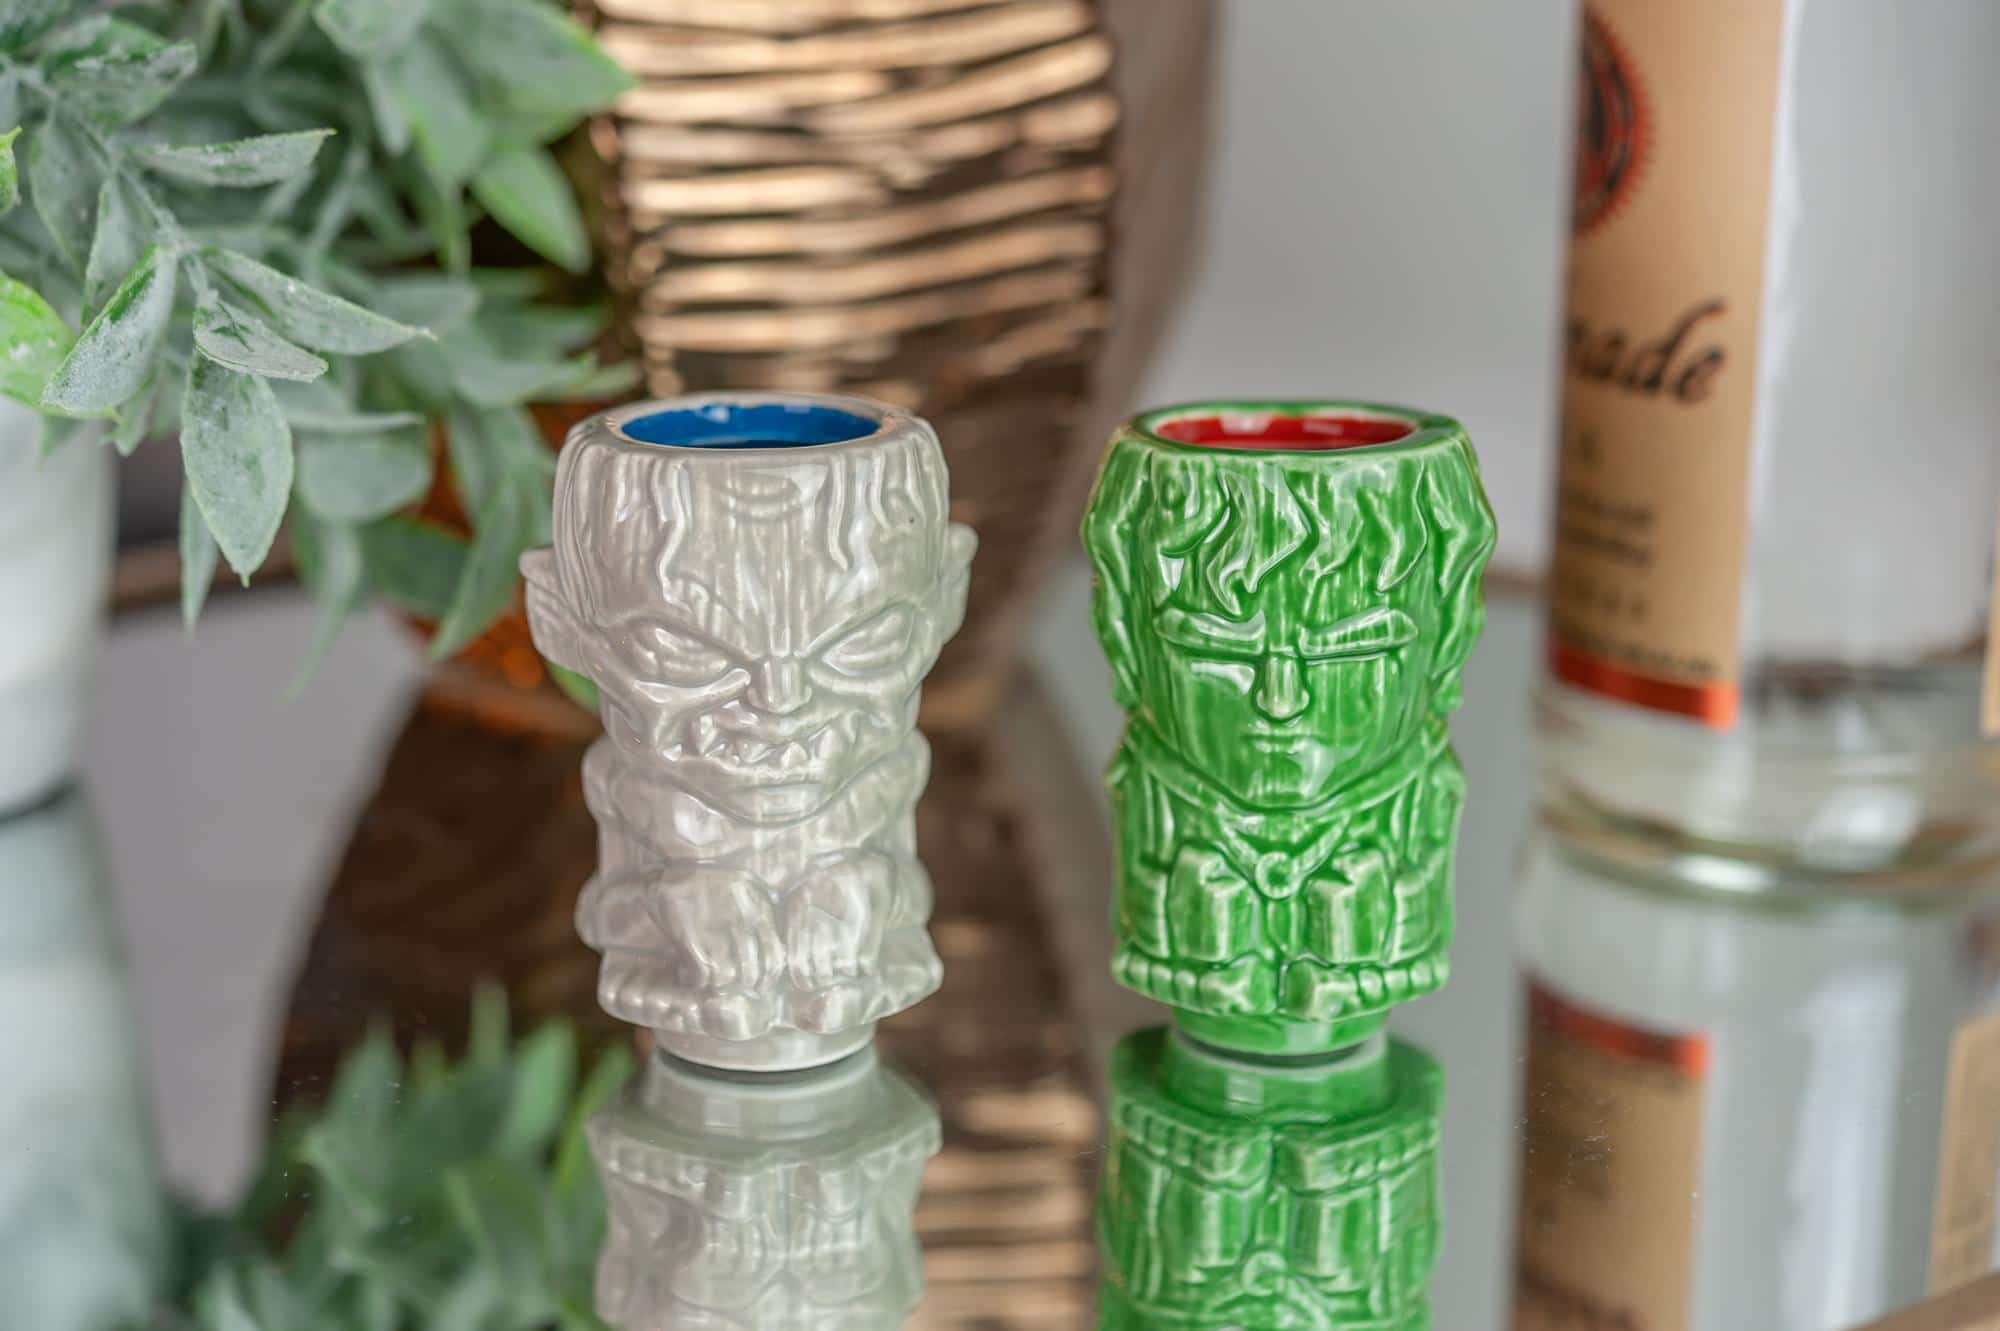 Lord of the Rings Geeki Tikis collection includes Gandalf, Frodo and Gollum mugs 19